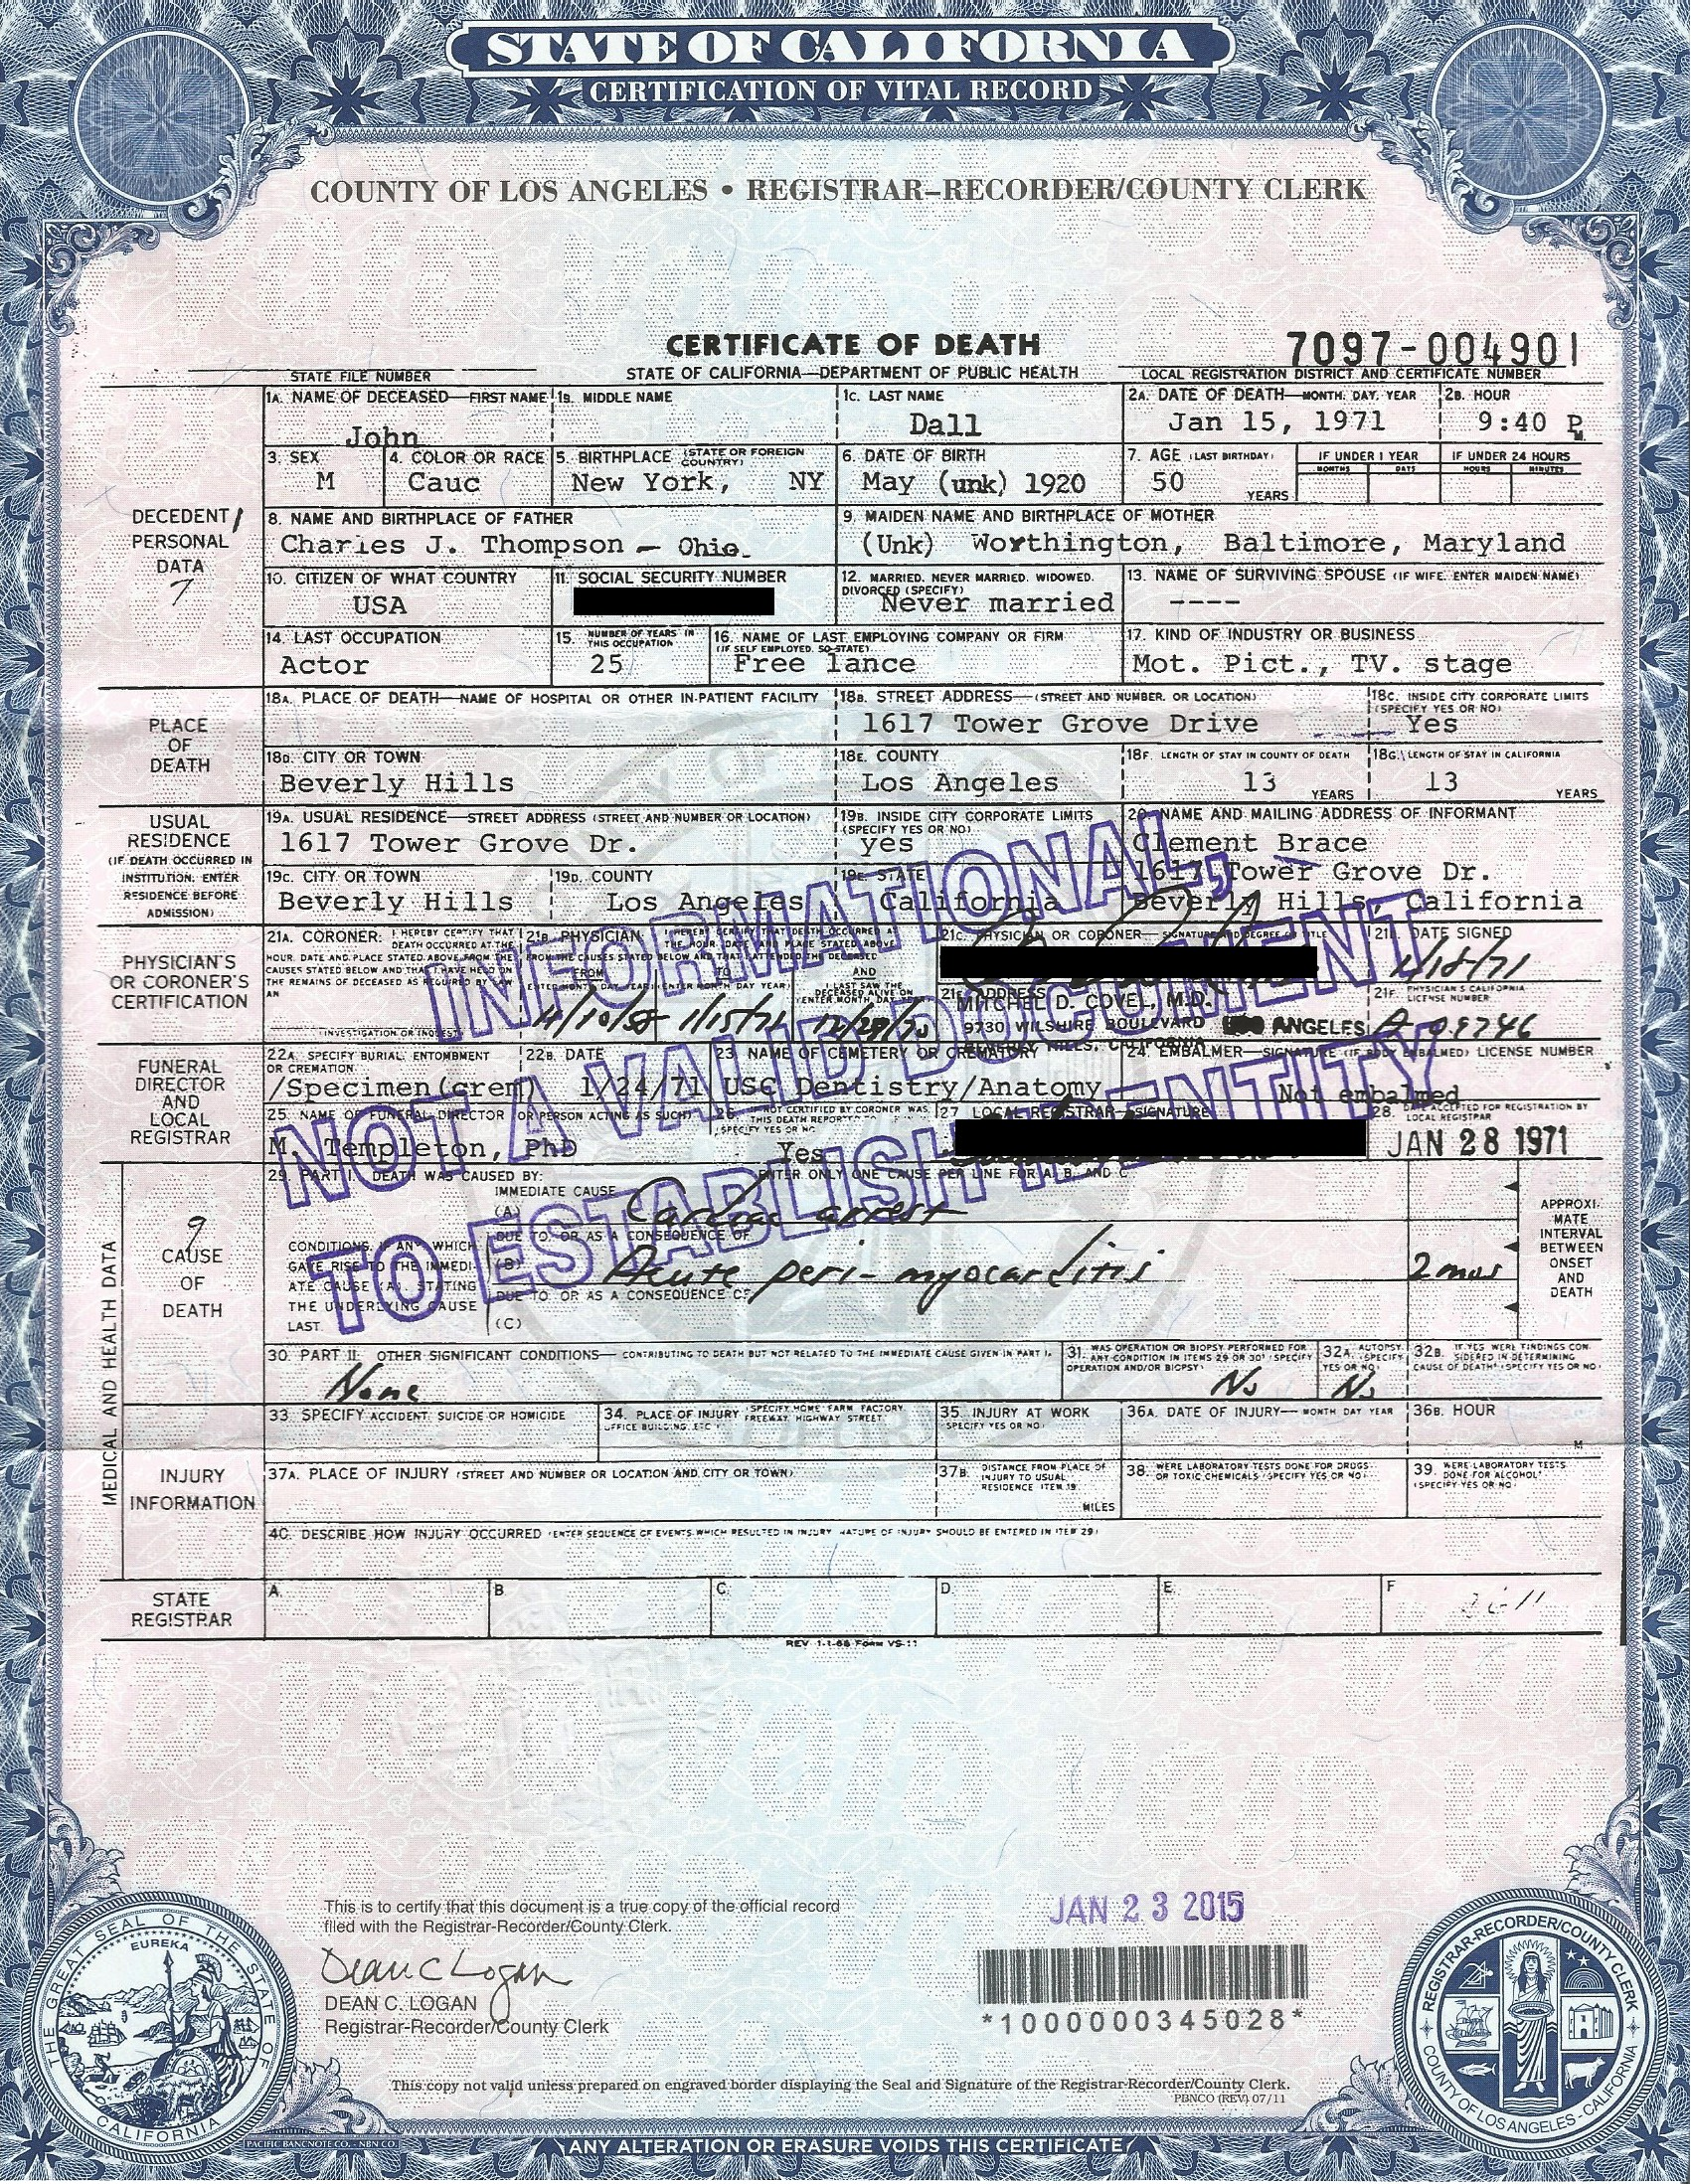 Awesome collection of sacramento birth certificate business order original birth certificate california best design aiddatafo Gallery